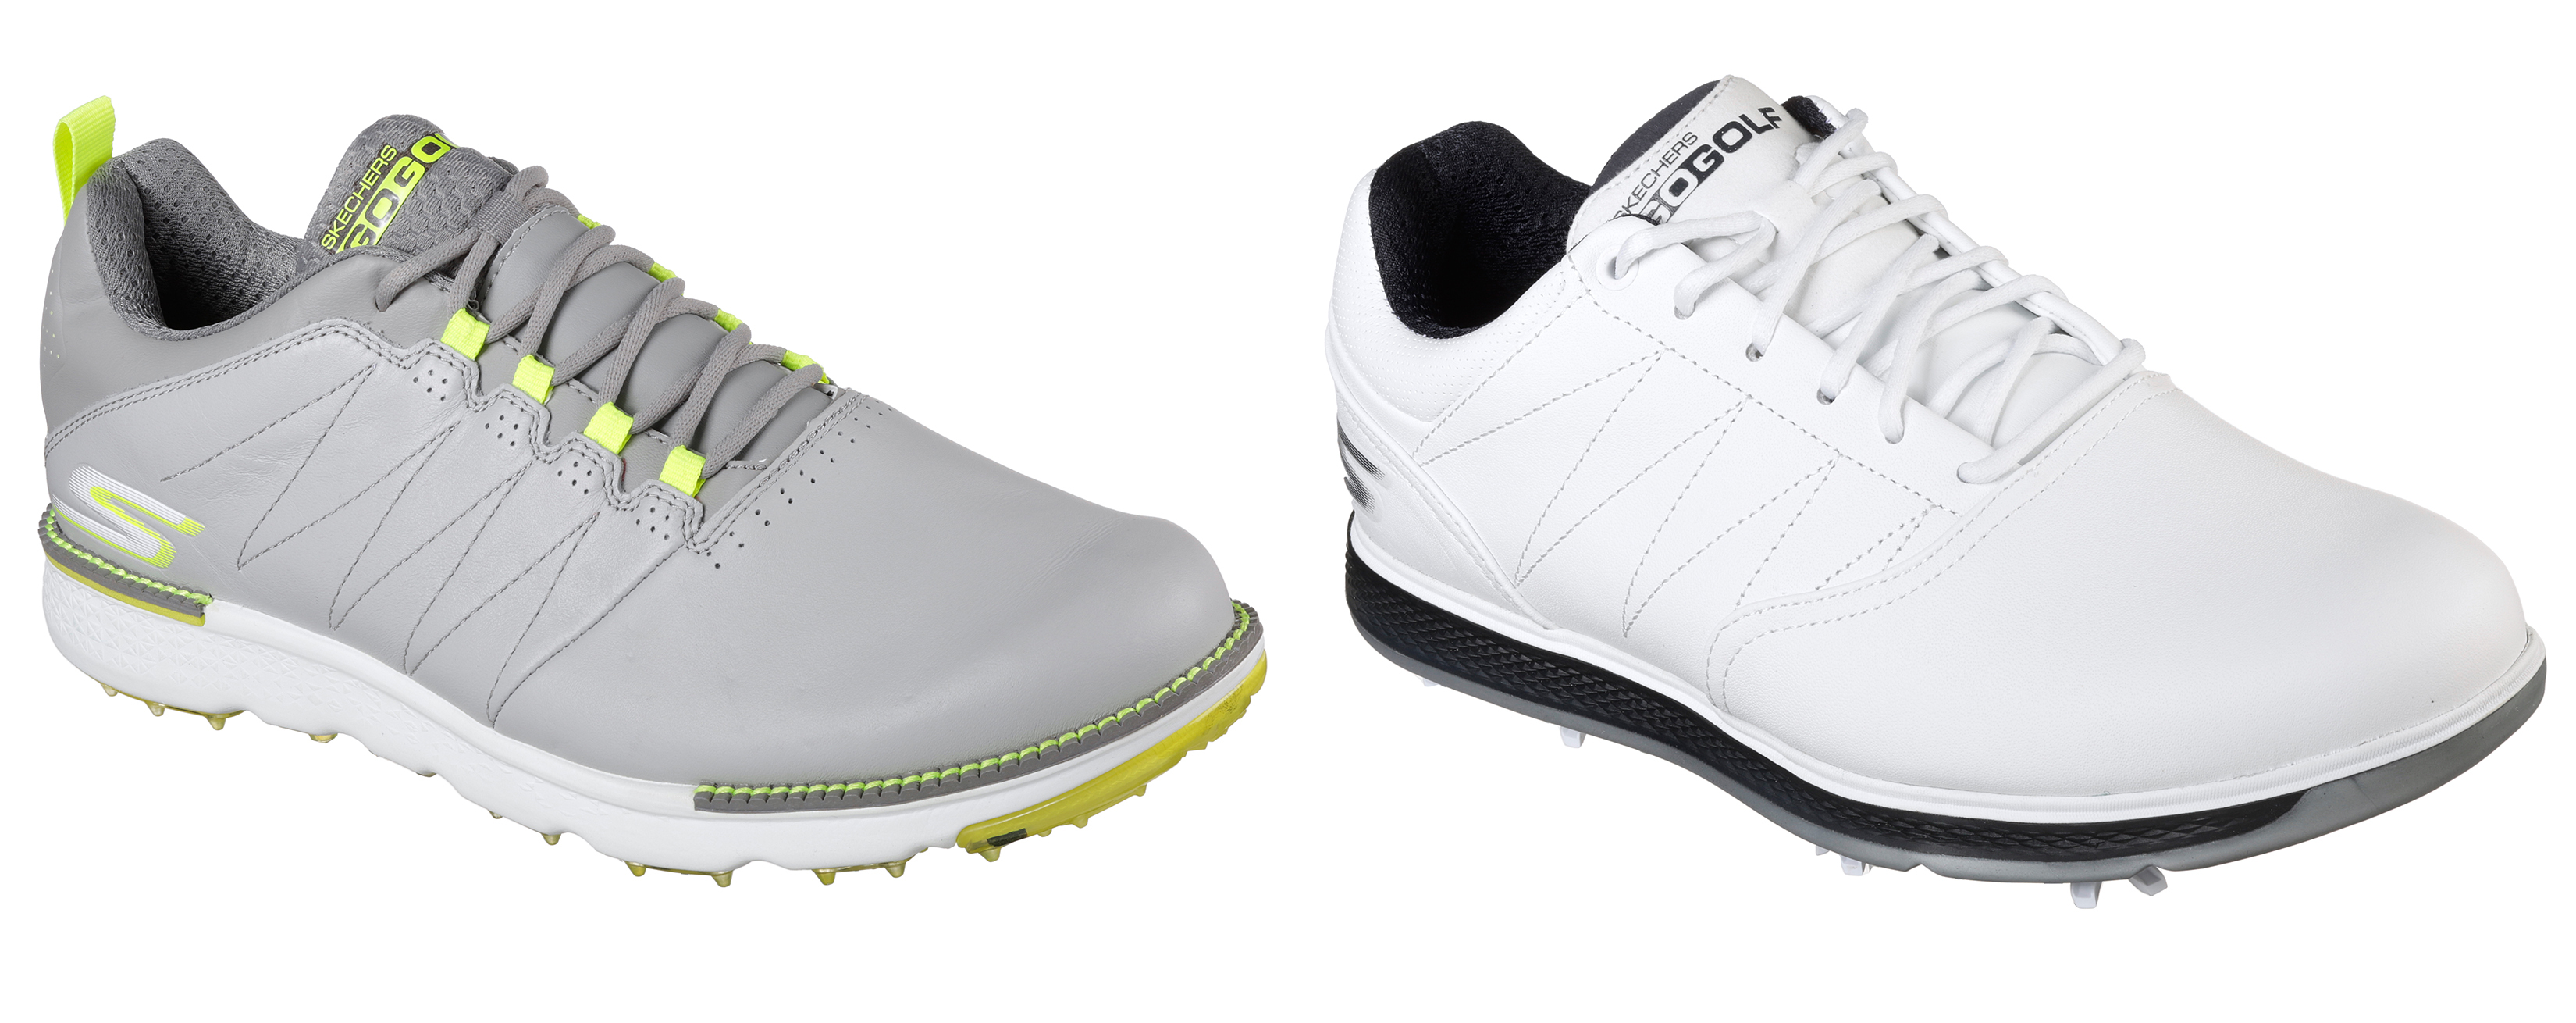 Skechers Performance Receives Honors For Best Golf Shoe In 2018 Business Wire